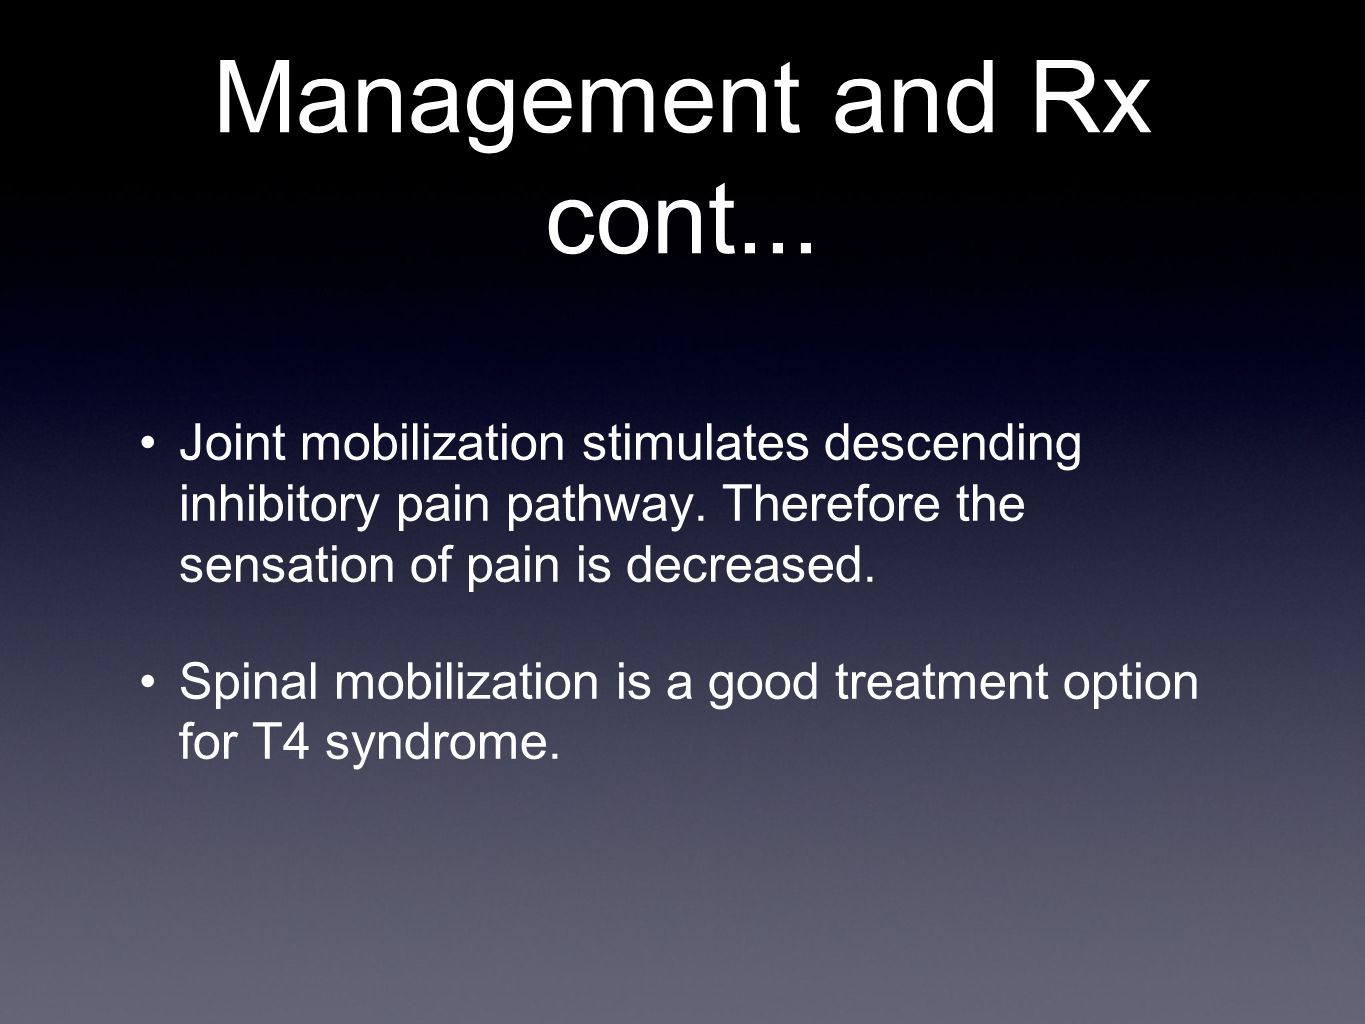 Management and Rx cont... Joint mobilization stimulates descending inhibitory pain pathway. Therefore the sensation of pain is decreased.